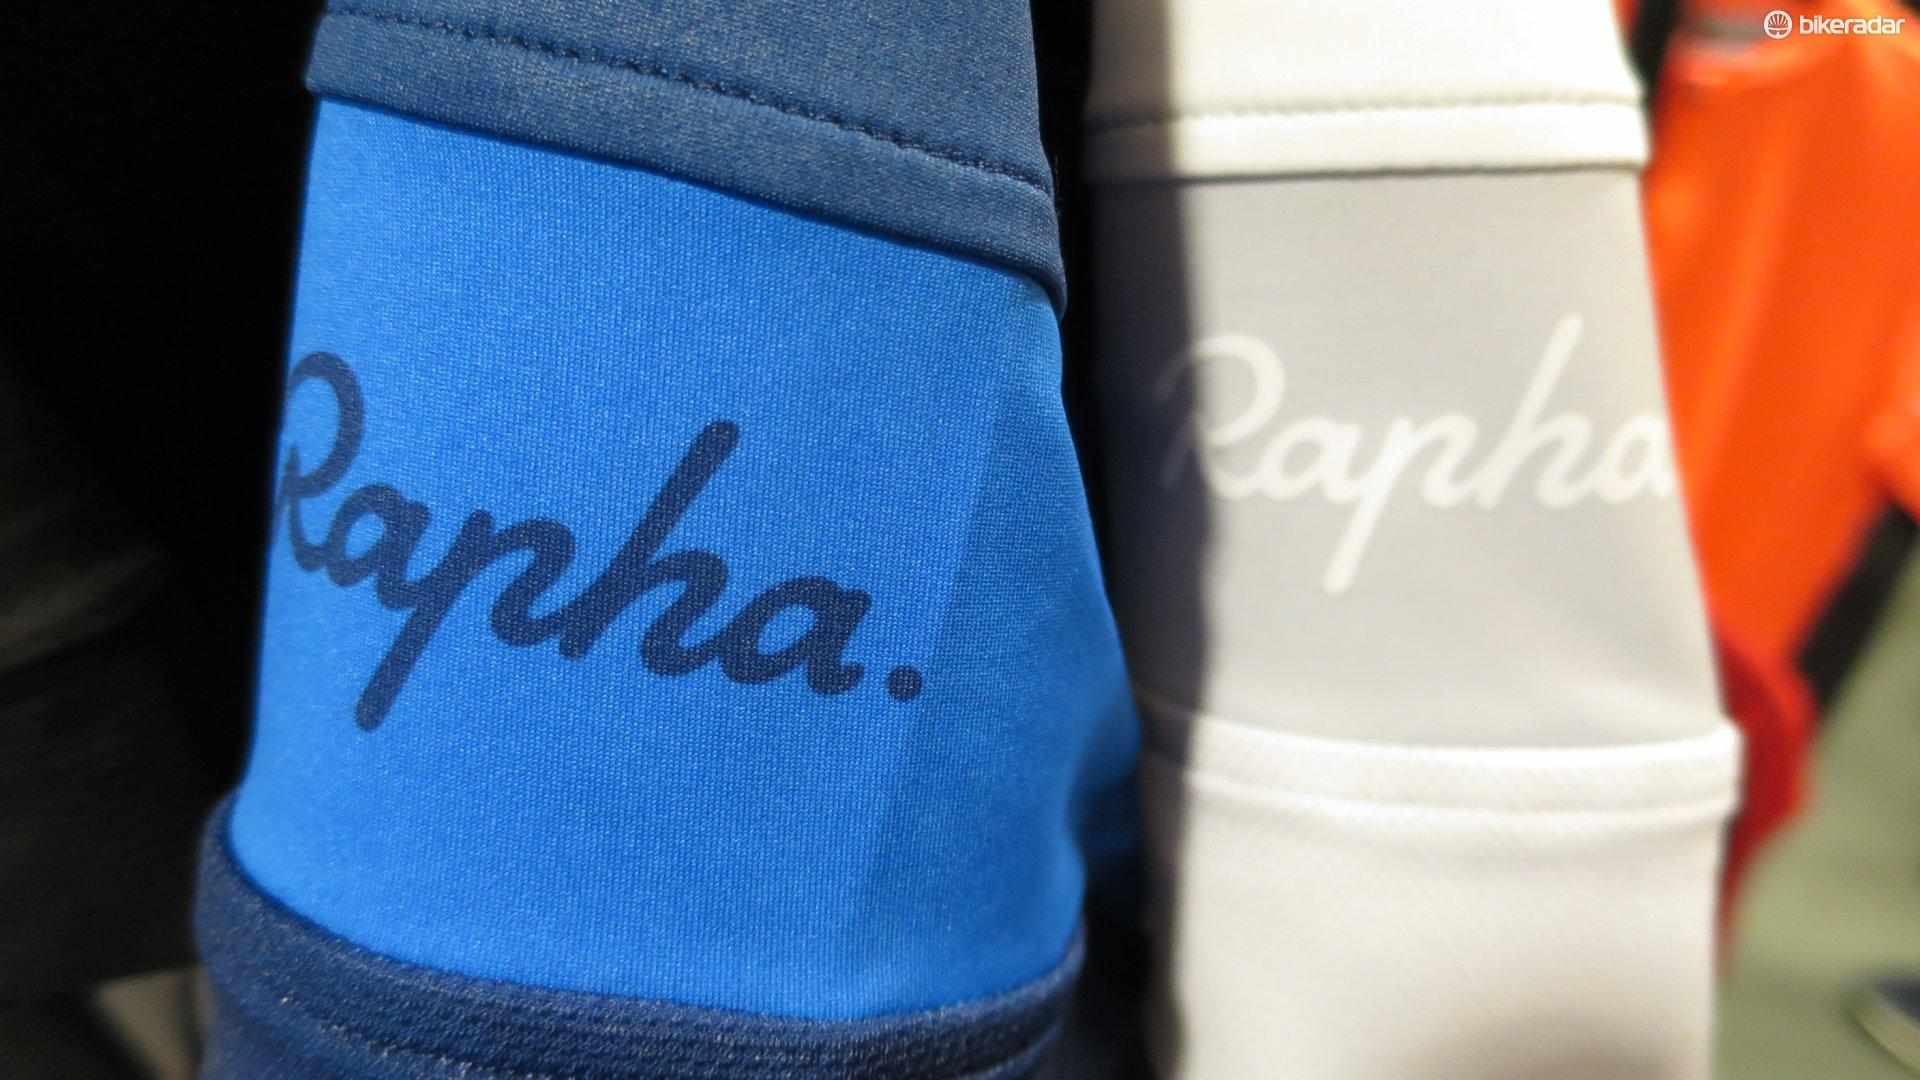 Rapha will be offering last year's gear at greatly reduced prices